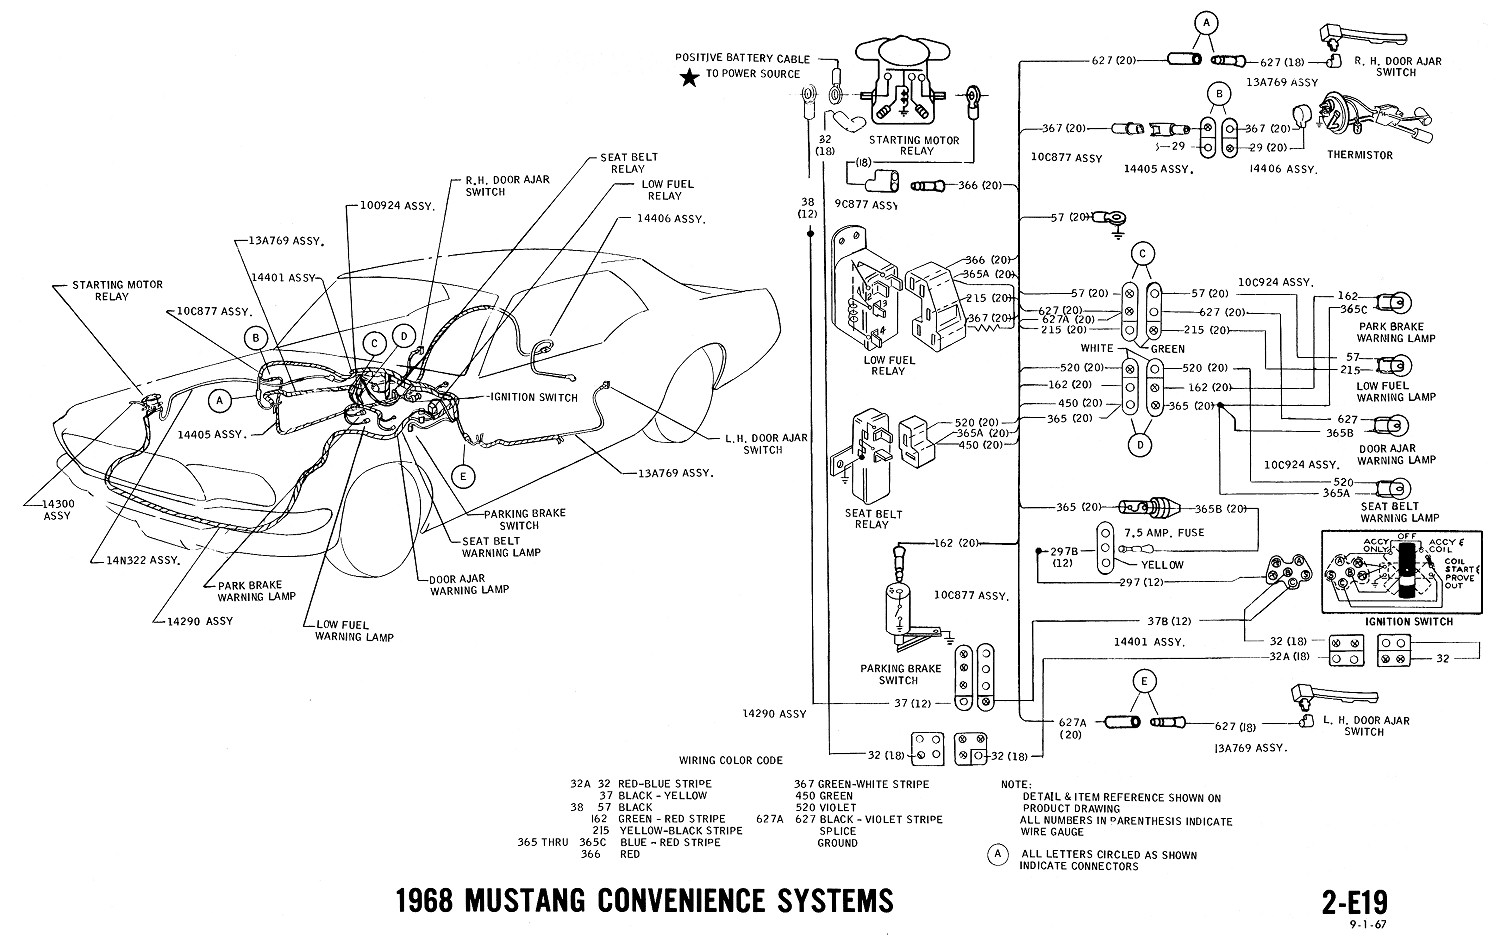 E19 1968 mustang wiring diagrams evolving software 1966 mustang engine wire harness at bakdesigns.co